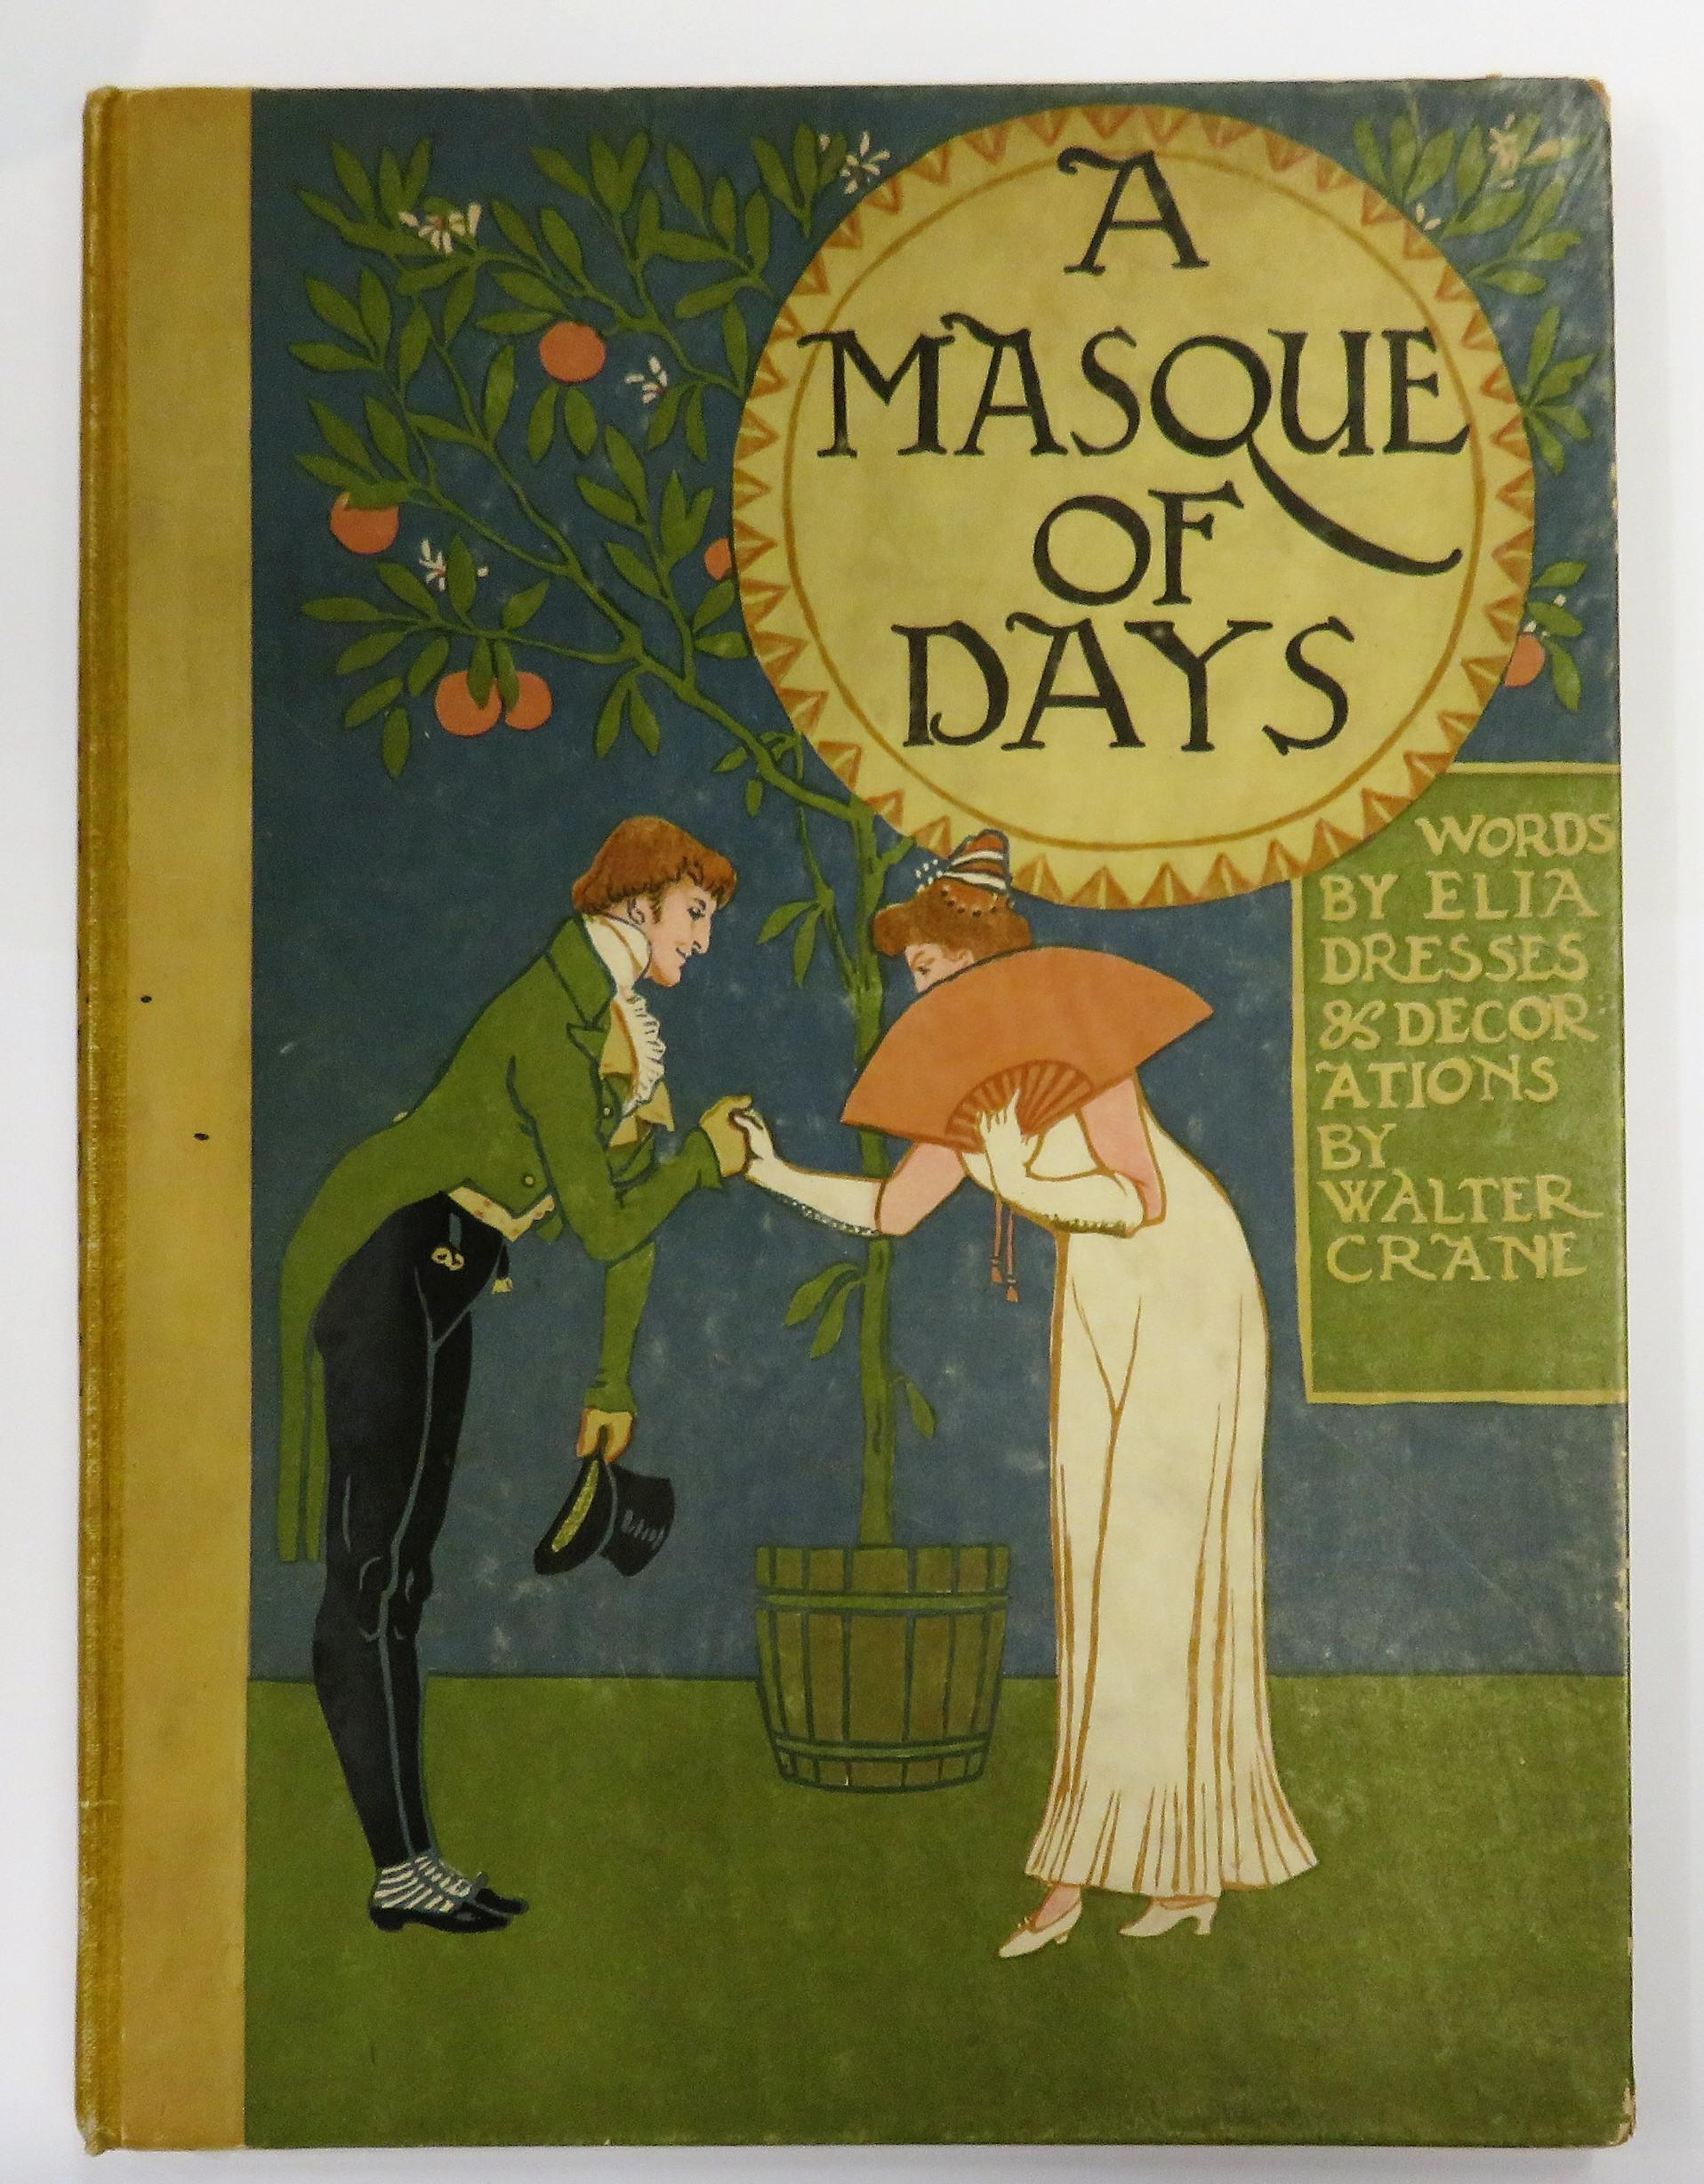 A Masque of Days From The Last Essays Of Elia; Newly Dressed & Decorated by Walter Crane